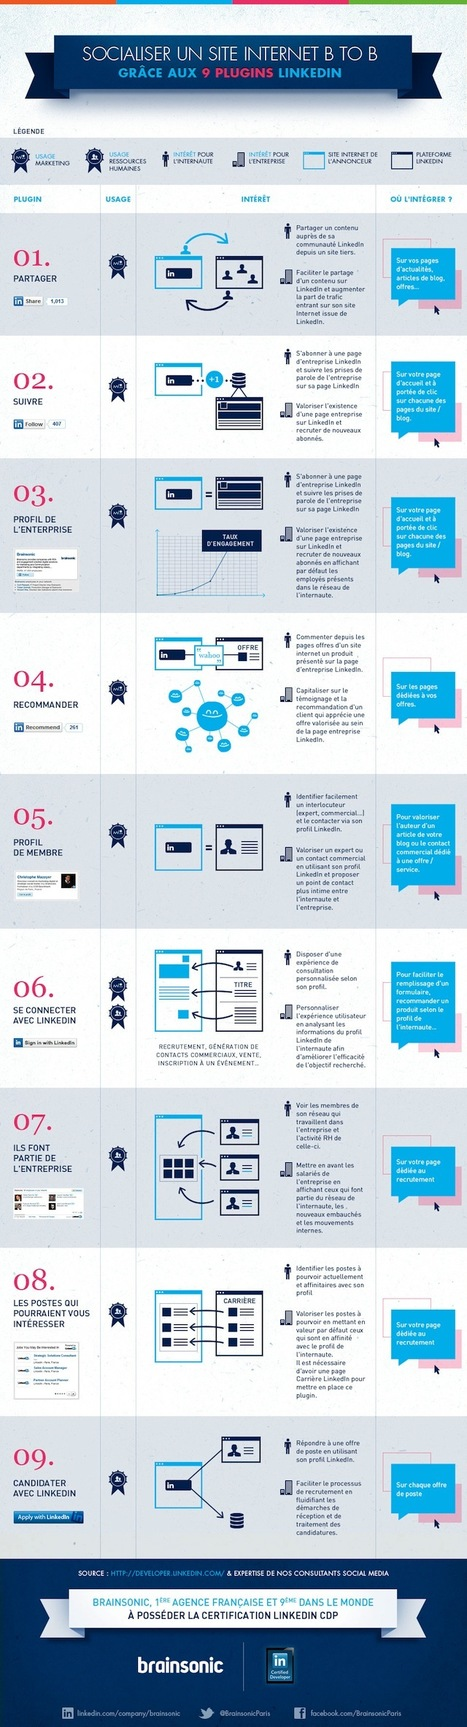 [Infographie] 9 plugins LinkedIn pour socialiser un site BtoB | VeilleInfographie | Scoop.it